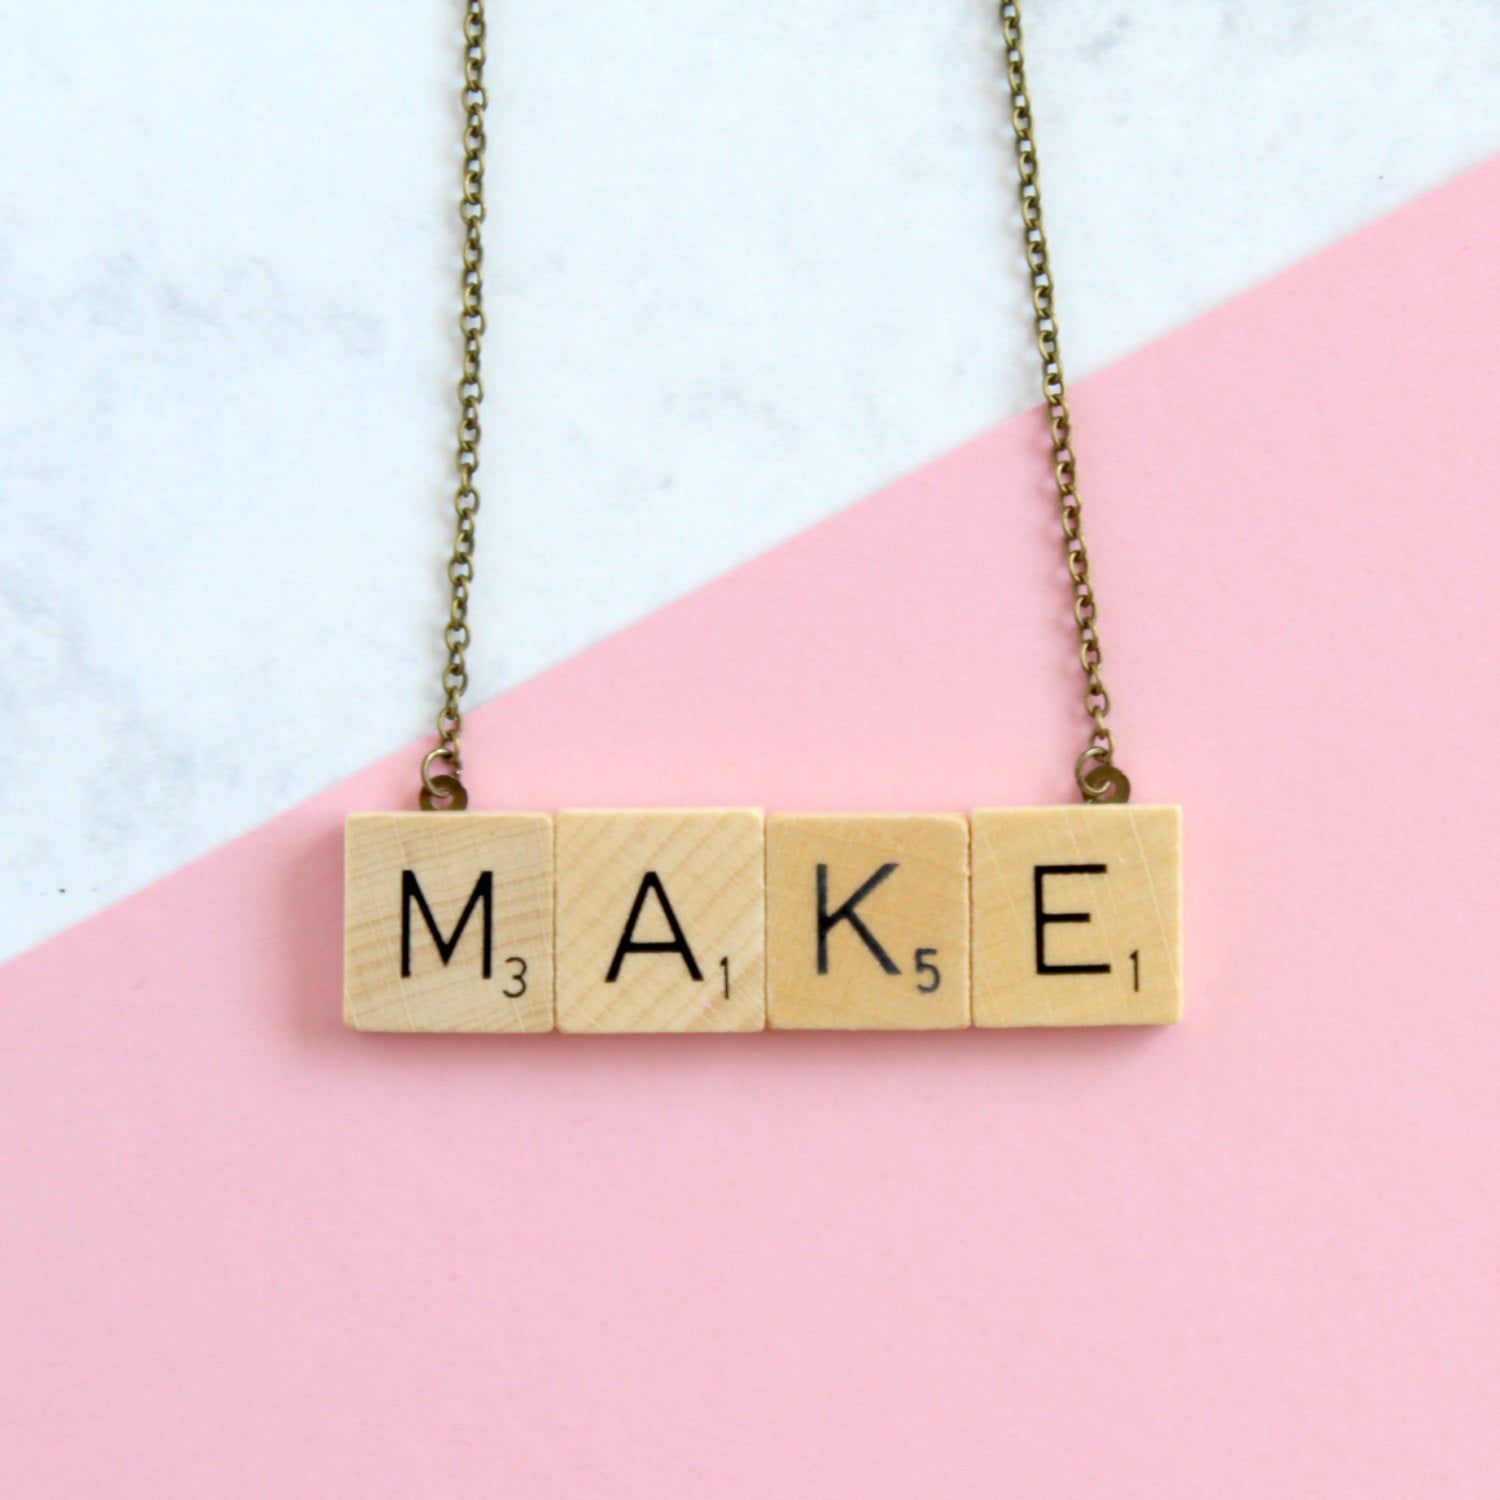 MAKE Scrabble Necklace from Claireabellemakes